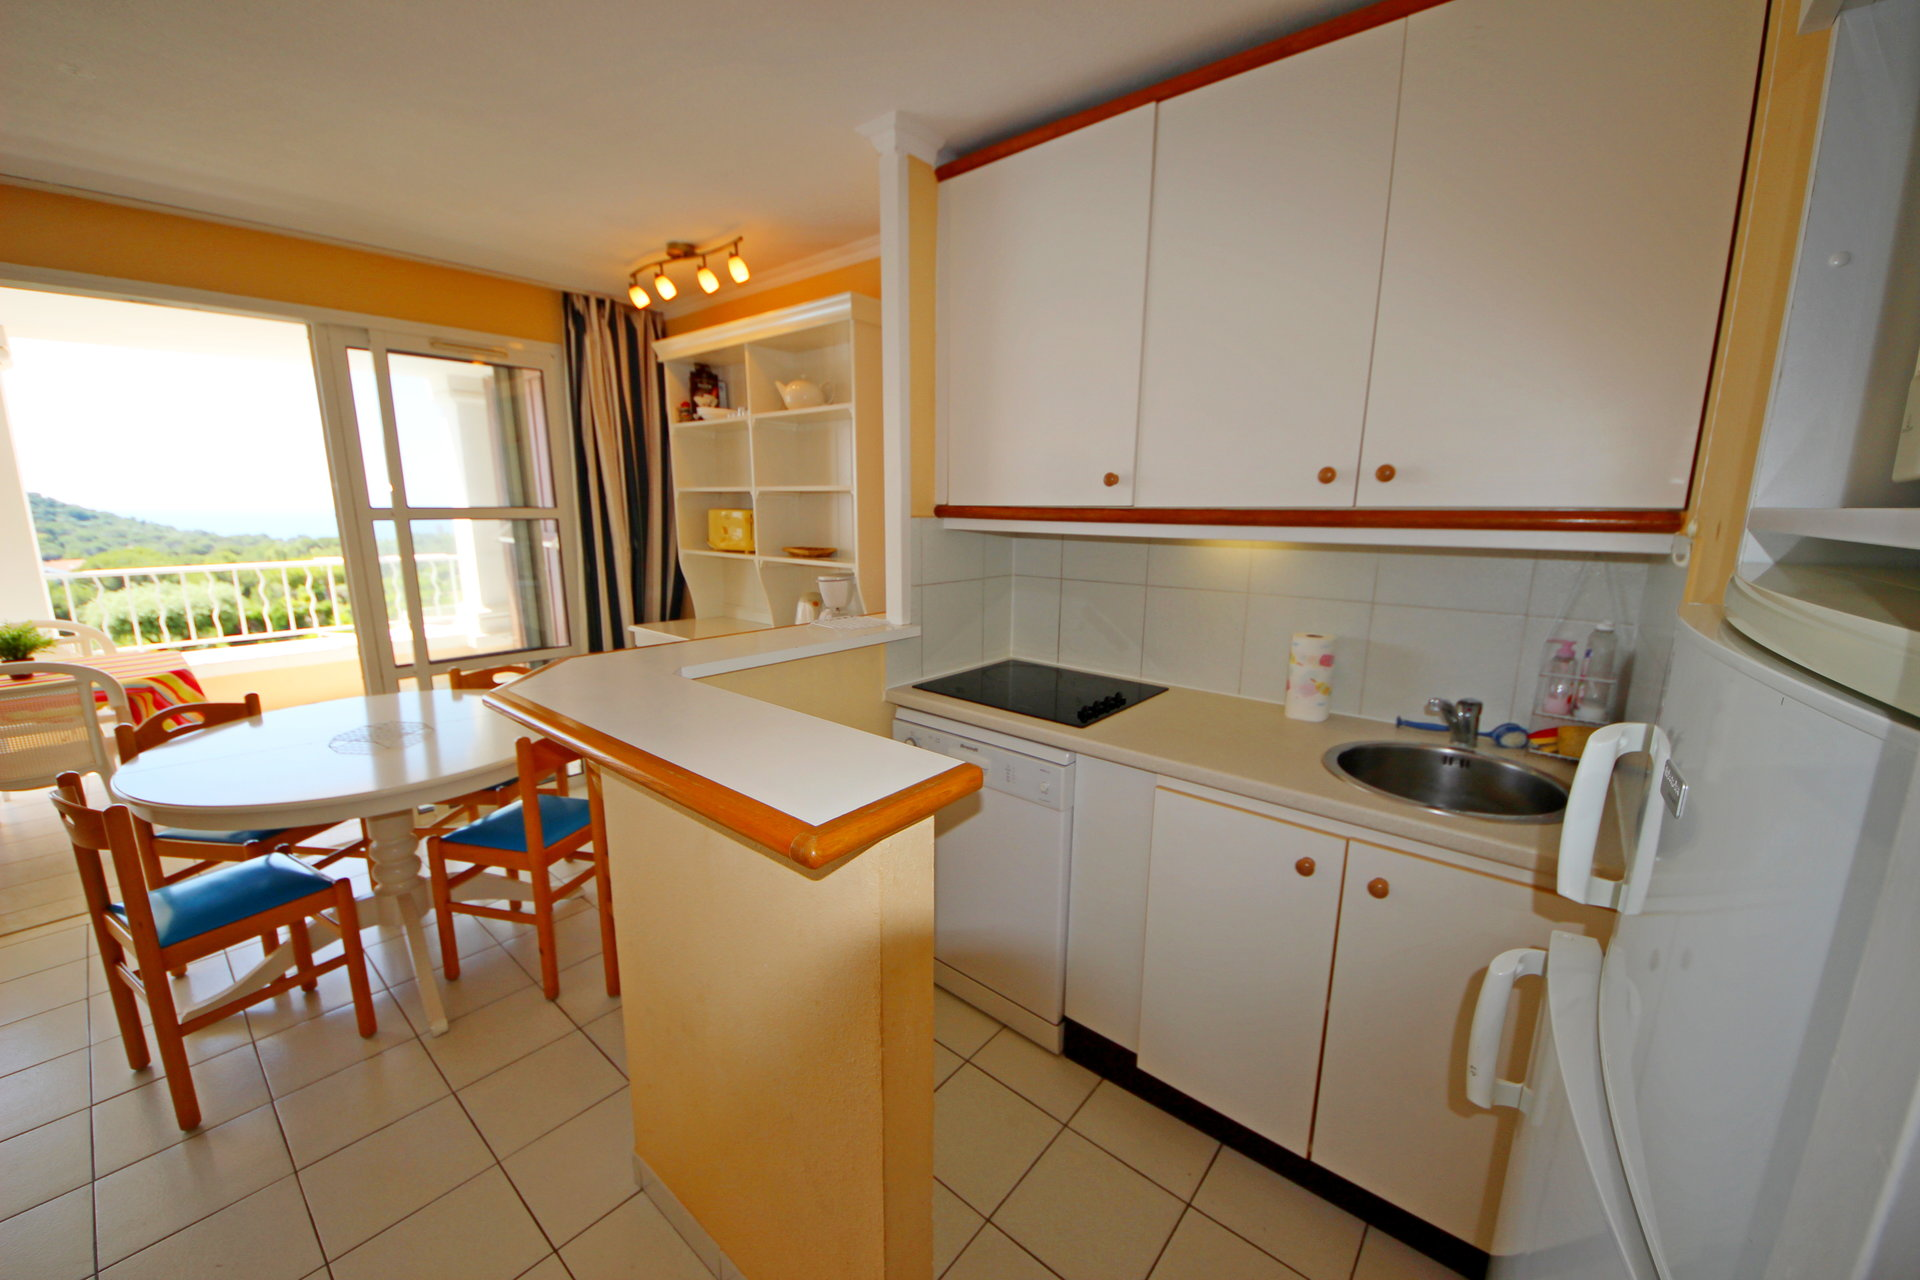 ApartmentStage 1st, View GOLF, position  , General condition Good, Kitchen Fitted, Heating Separate ...